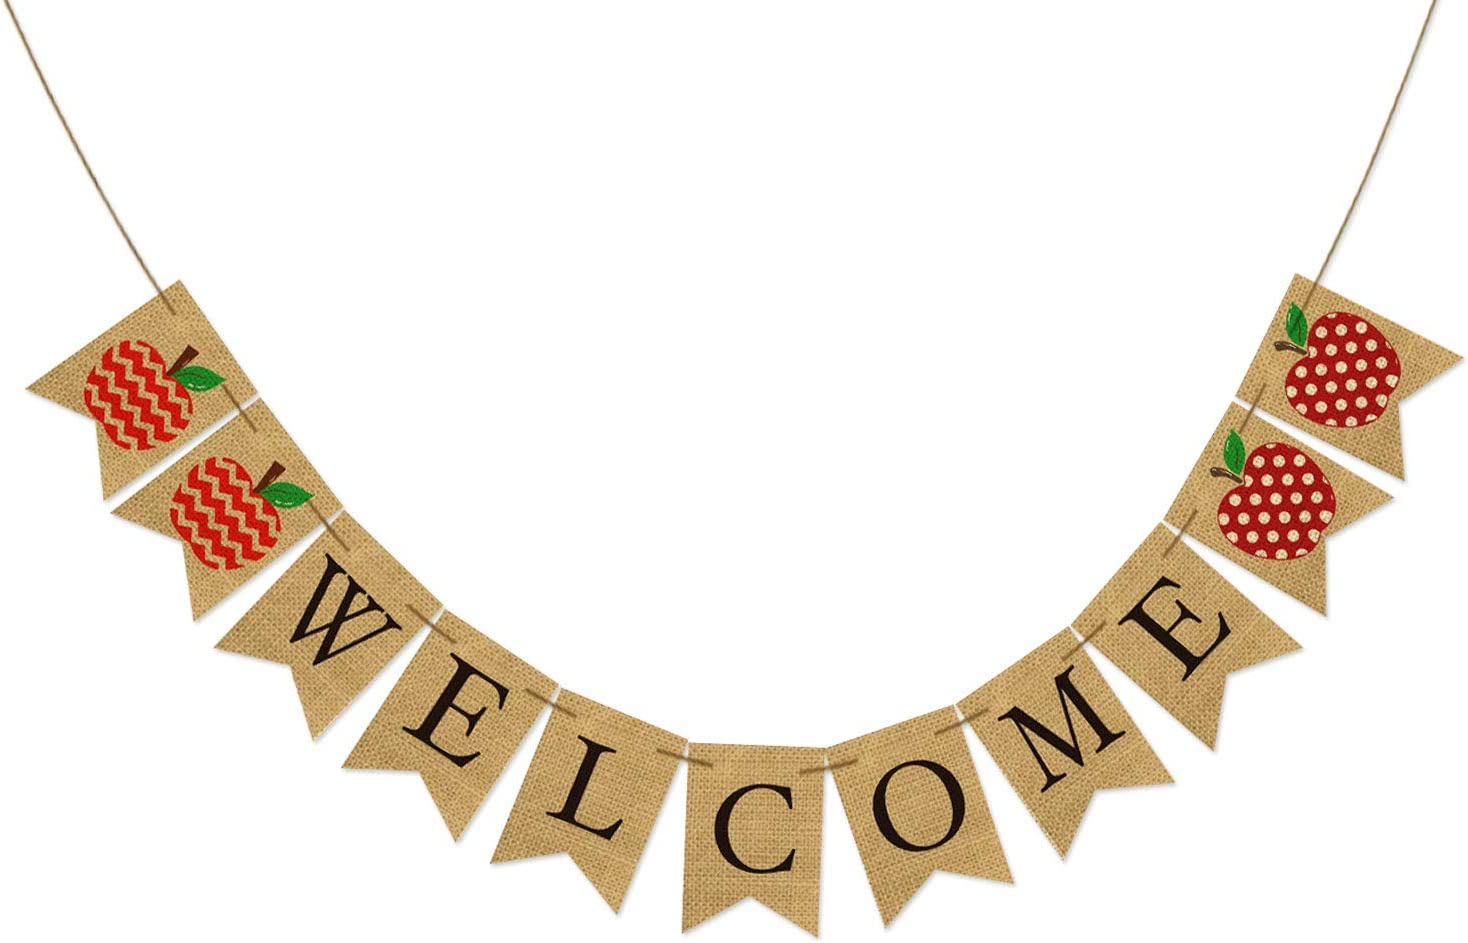 AVOIN Welcome Banner Chevron Polka Dot Apple, Rustic Pennant Decoration for Back to School First Day of School Teacher Appreciation Party Supplies Classroom Decor - No DIY Required